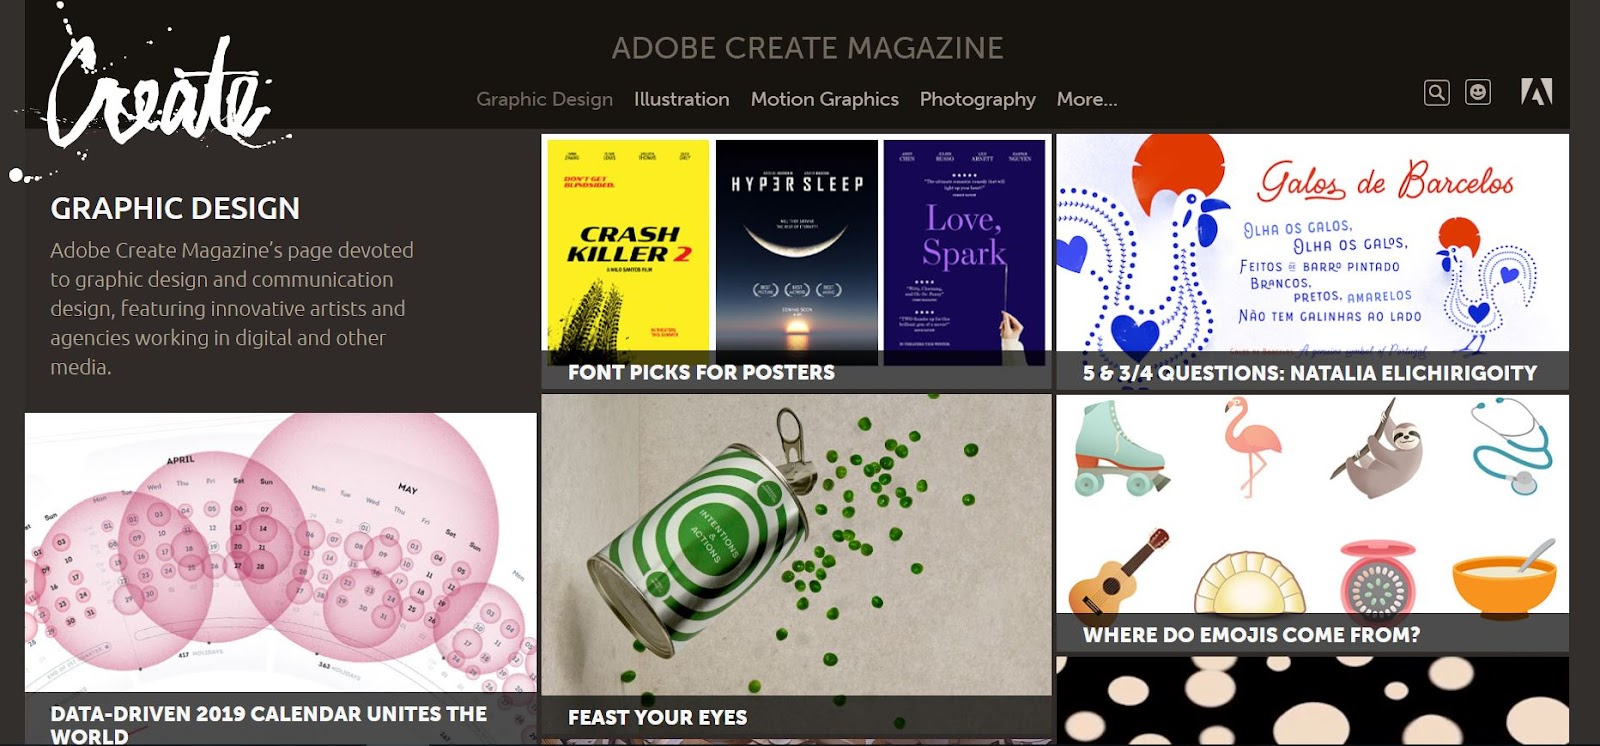 Adobe Create Magazine - Top Graphic Design Blogs